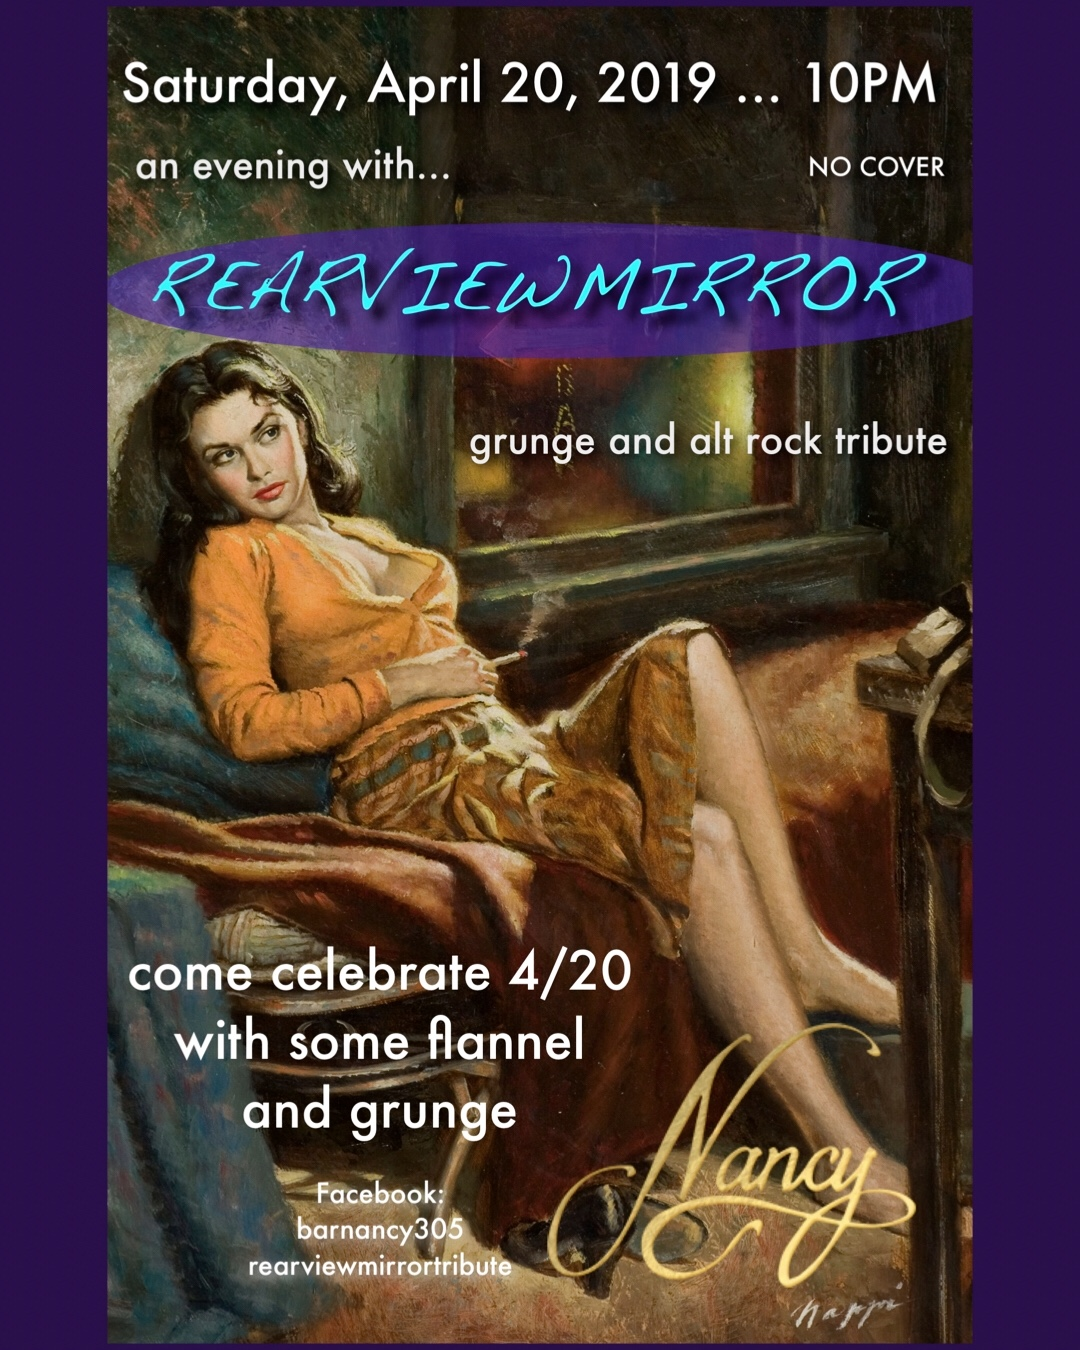 4/20 and Grunge with RearViewMirror! - DJ. Set by Joshy Josh! @ Bar Nancy Saturday, April 20, at 10 PM